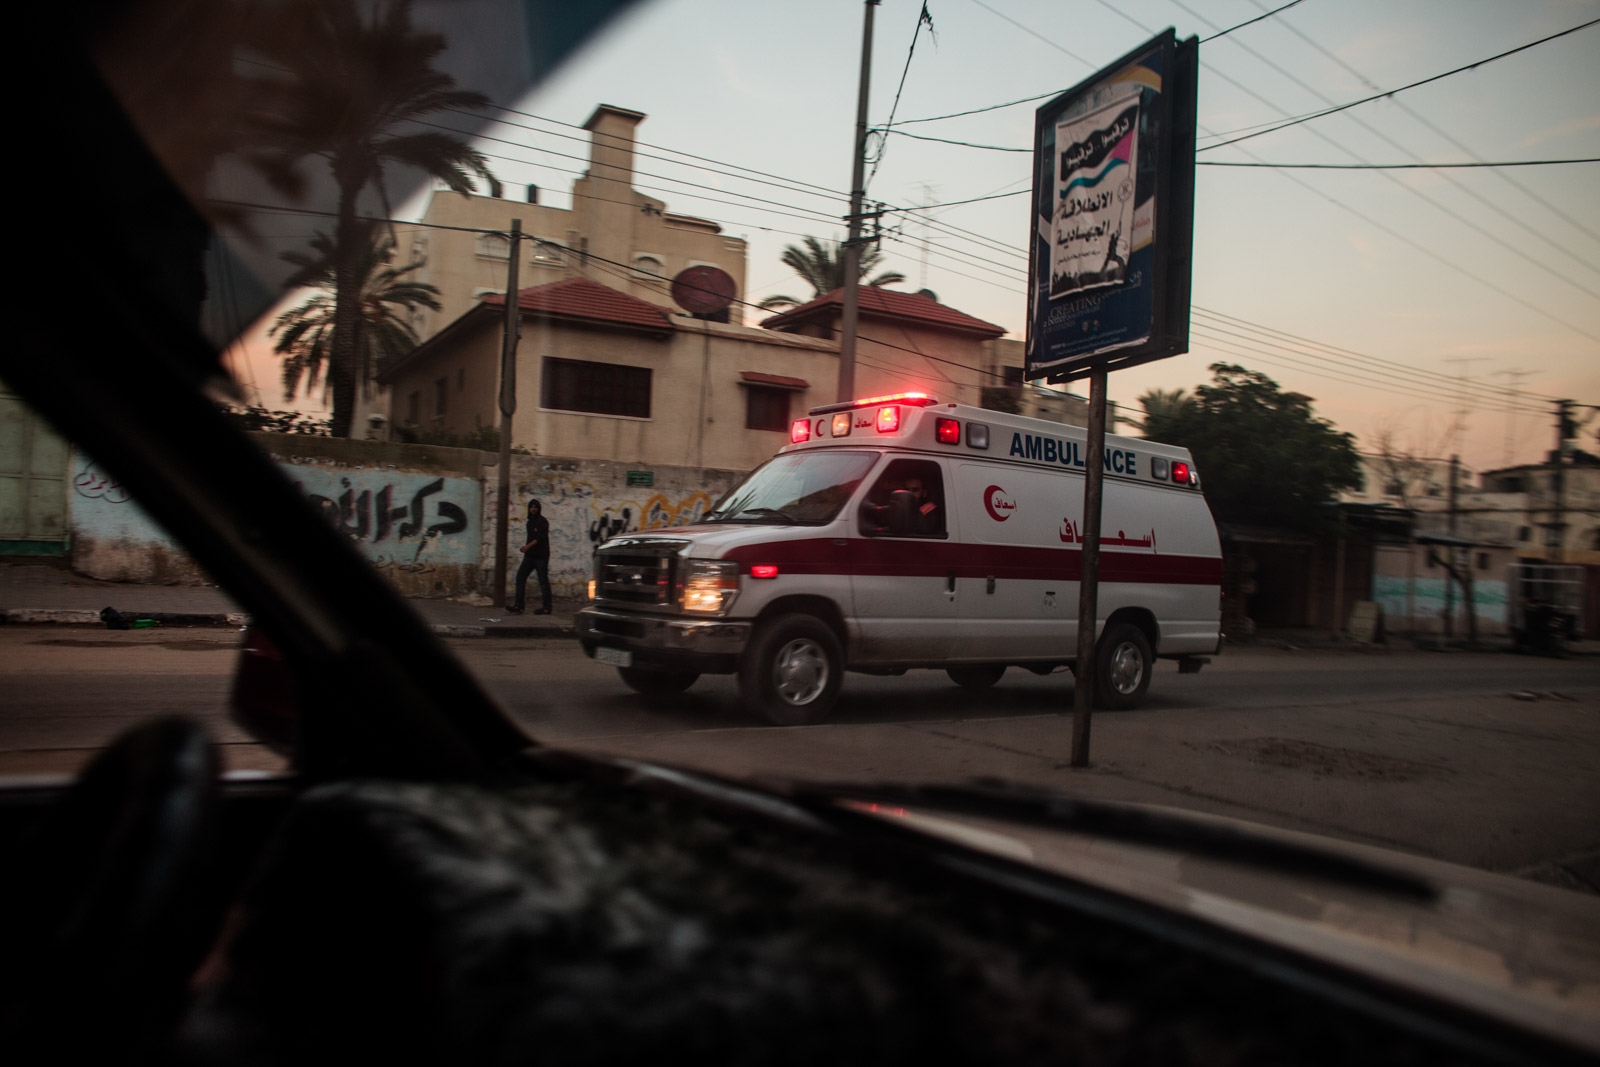 Gaza City, Gaza - November 14, 2012: Palestinian ambulance rushes to the area bombed on the first day of the Israeli military operation dubbed Pillars of Cloud. The 30 air strikes by Israeli air force throughout Gaza strip resulted in the death of 8 people and injured more than 50 only on the first day of the 8-day war.